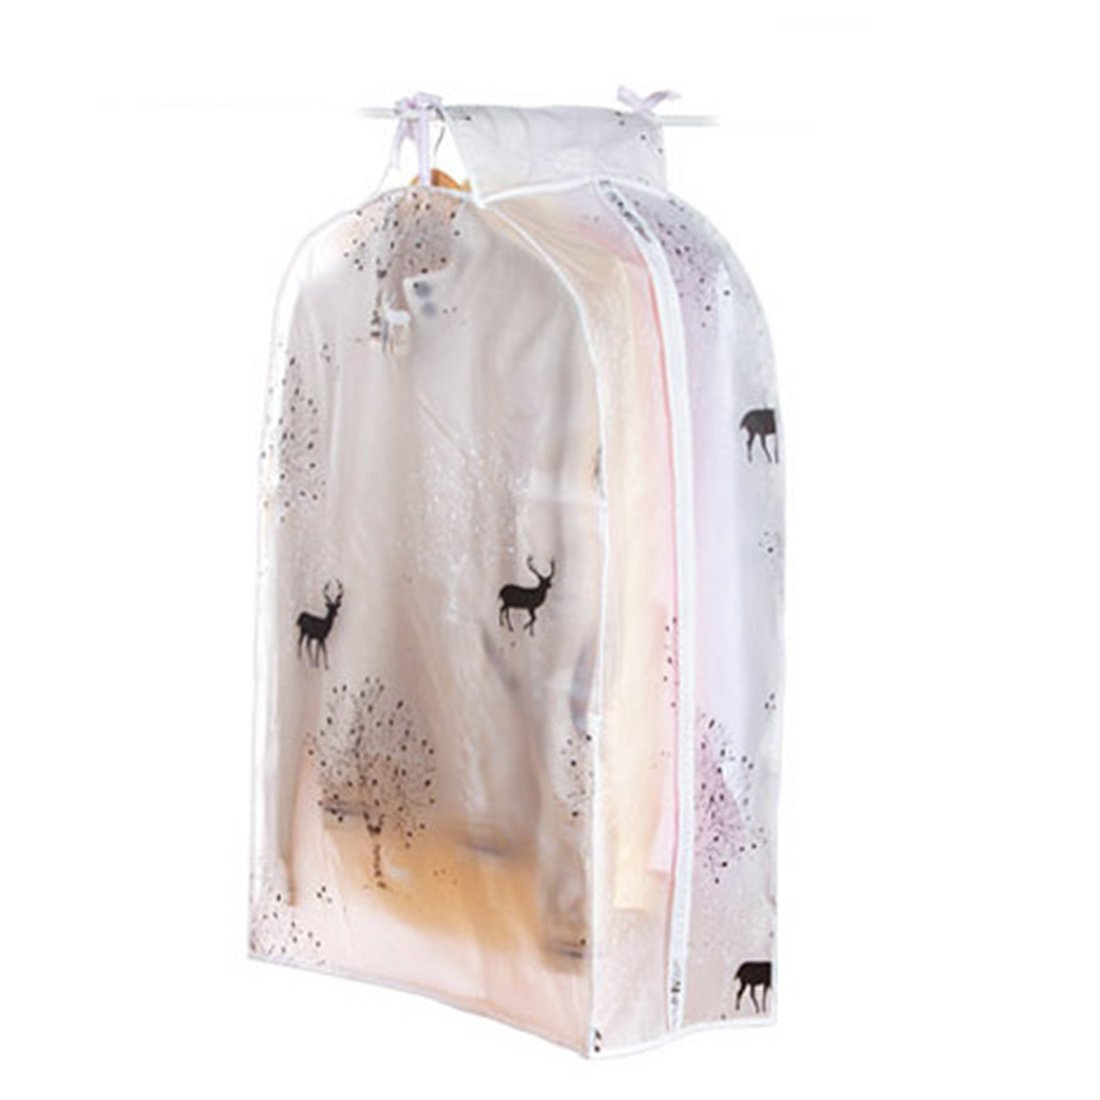 "Garment Bags, Yamix Thicken PEVA Hang Dustproof Clothes Storage Bag Garment Suit Coat Dust Cover,Garment Bag Covers Protector,Dress Suit Bag,Clothes Storage Bag 23.6"" x 35.4"" x 11.8"" - Carton Fawn"